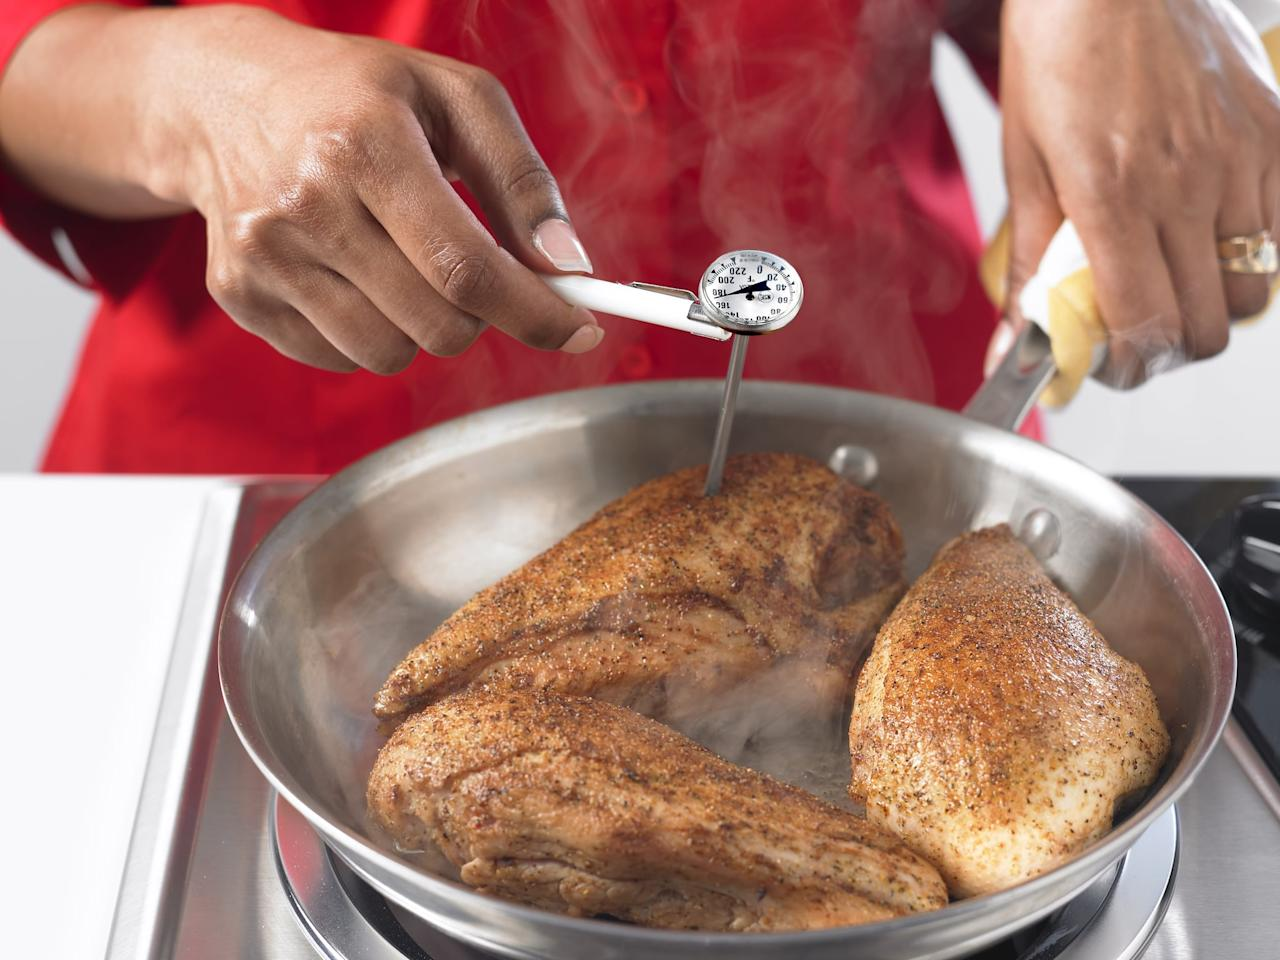 "<p>One of the trickiest parts of baking chicken is knowing exactly when it's done. To avoid dry, overcooked chicken or pink, undercooked chicken, invest in a <a href=""http://www.jcpenney.com/polder-dual-oven-and-meat-thermometer/prod.jump?ppId=14f732f&amp;country=US&amp;currency=USD&amp;selectedSKUId=78101430018&amp;selectedLotId=7810143&amp;fromBag=true&amp;cm_mmc=ShoppingFeed-_-GooglePLA-_-Thermometers-_-78101430018&amp;utm_medium=cse&amp;utm_source=google&amp;utm_campaign=thermometers&amp;utm_content=78101430018&amp;cid=cse%7Cgoogle%7C004%20%2d%20home%20furn%20leisure%7Cthermometers_78101430018"" target=""_blank"" class=""ga-track"" data-ga-category=""Related"" data-ga-label=""http://www.jcpenney.com/polder-dual-oven-and-meat-thermometer/prod.jump?ppId=14f732f&amp;country=US&amp;currency=USD&amp;selectedSKUId=78101430018&amp;selectedLotId=7810143&amp;fromBag=true&amp;cm_mmc=ShoppingFeed-_-GooglePLA-_-Thermometers-_-78101430018&amp;utm_medium=cse&amp;utm_source=google&amp;utm_campaign=thermometers&amp;utm_content=78101430018&amp;cid=cse